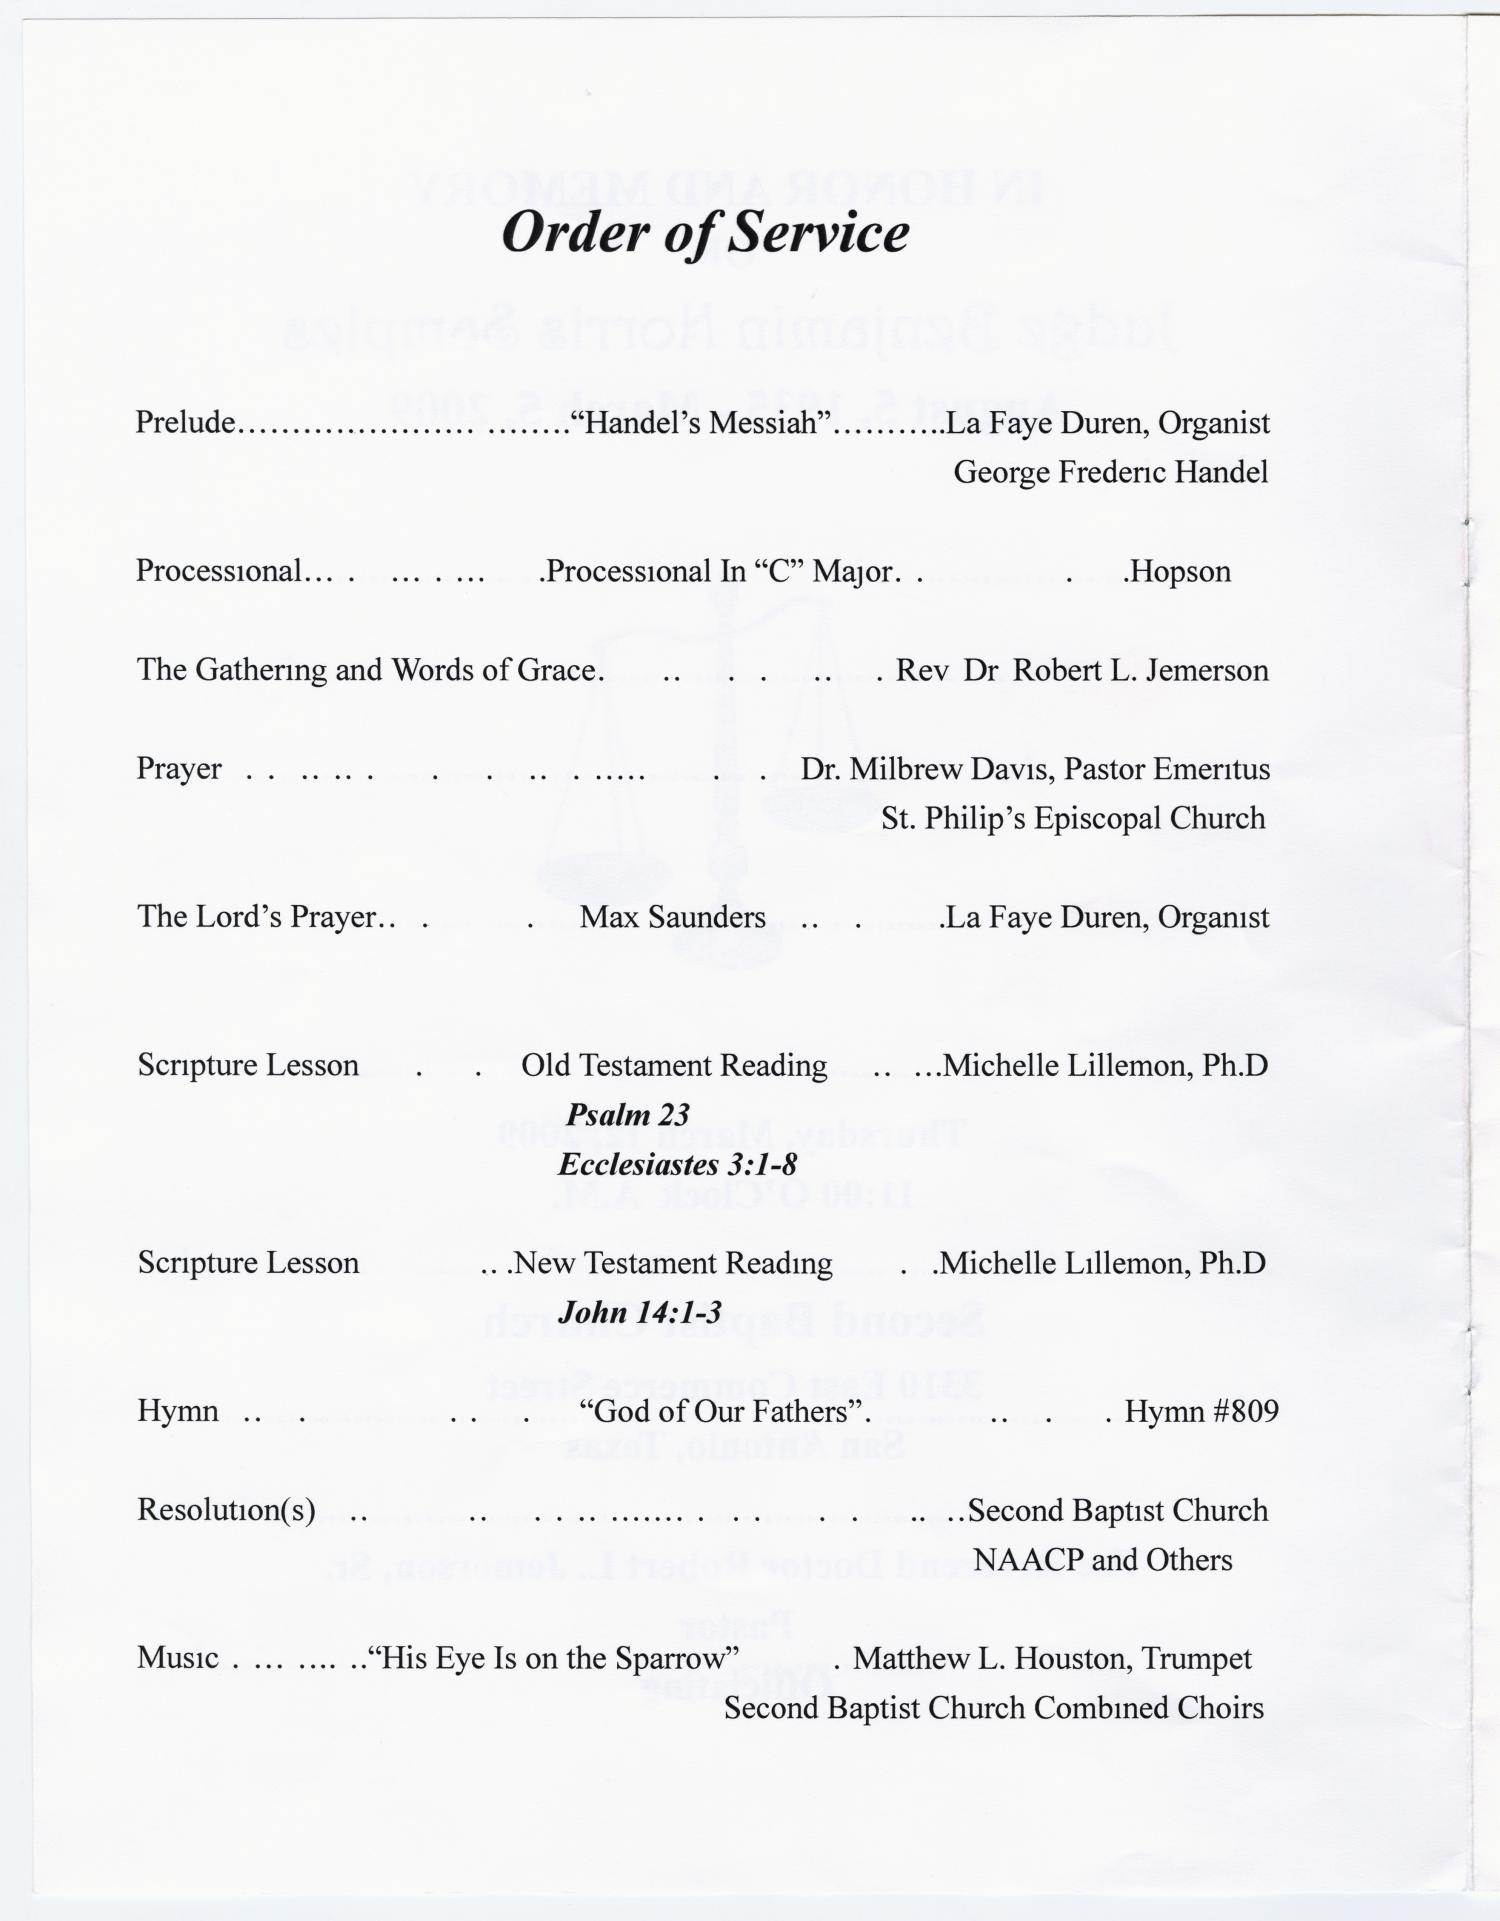 Funeral Program For Benjamin Norris Samples Page 2 Of 10 The Portal To Texas History